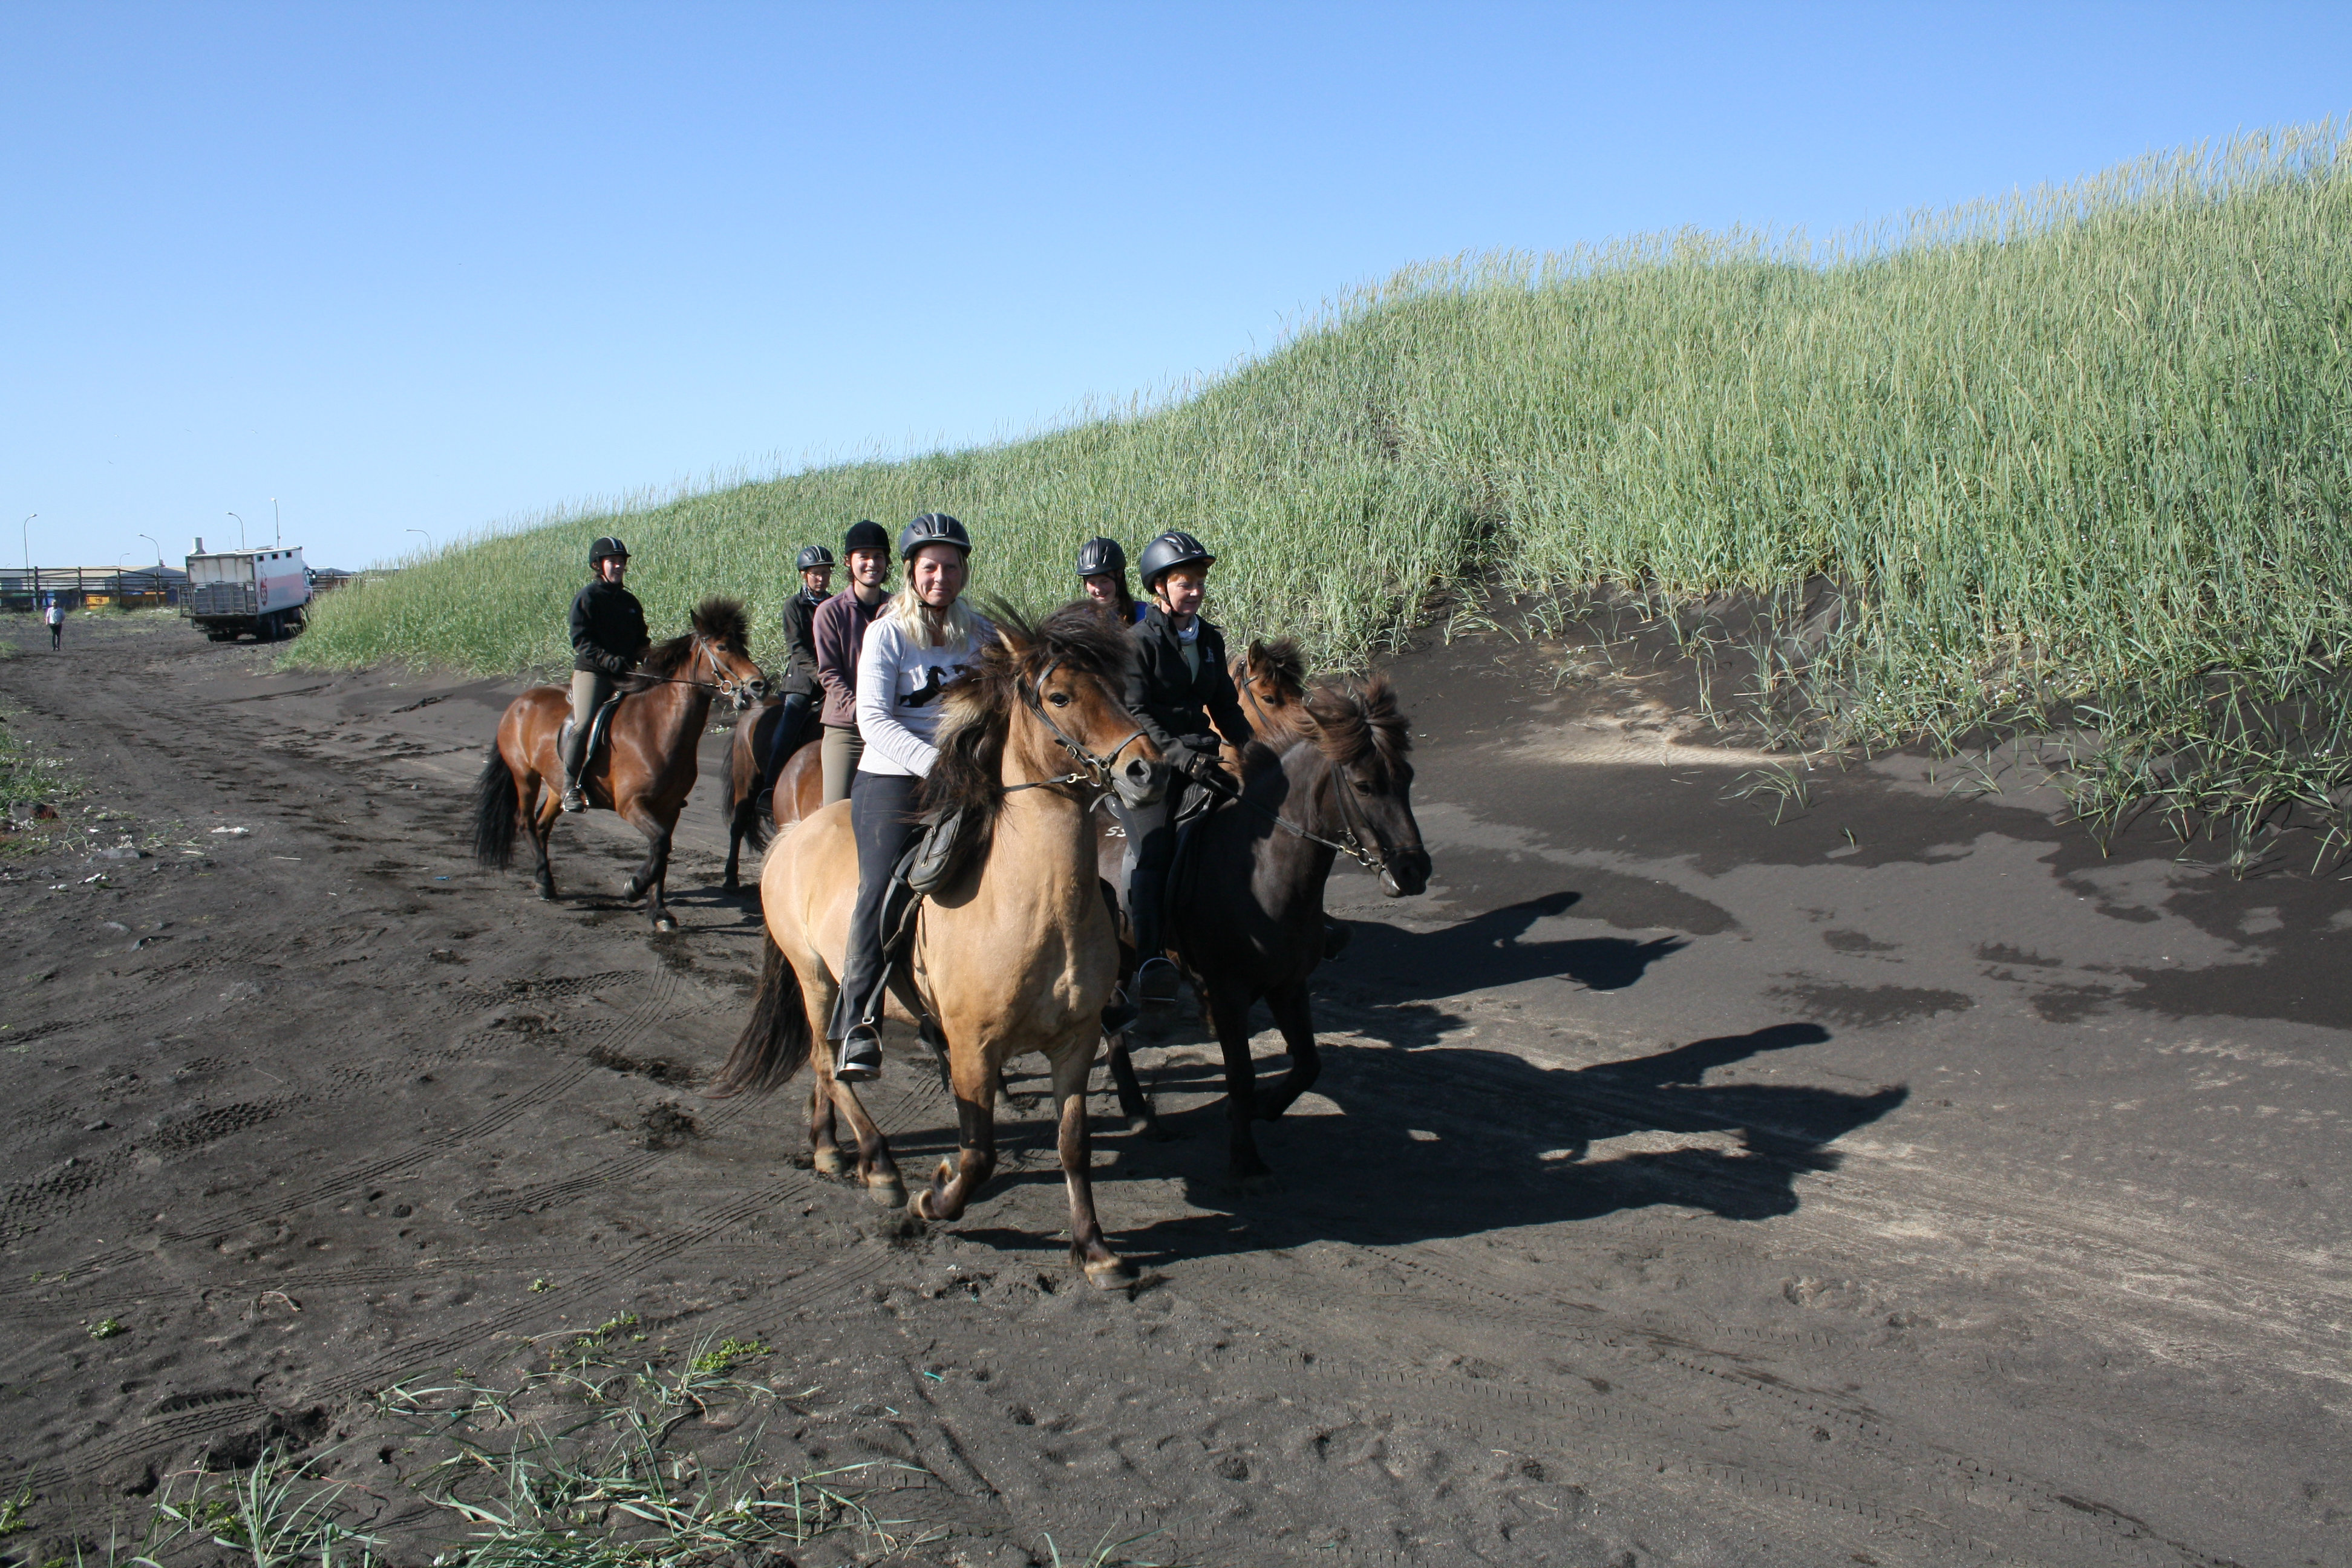 The Horse Riding Tour on a Beach allows you to experience 4 out of the 5 gaits of the Icelandic horse.